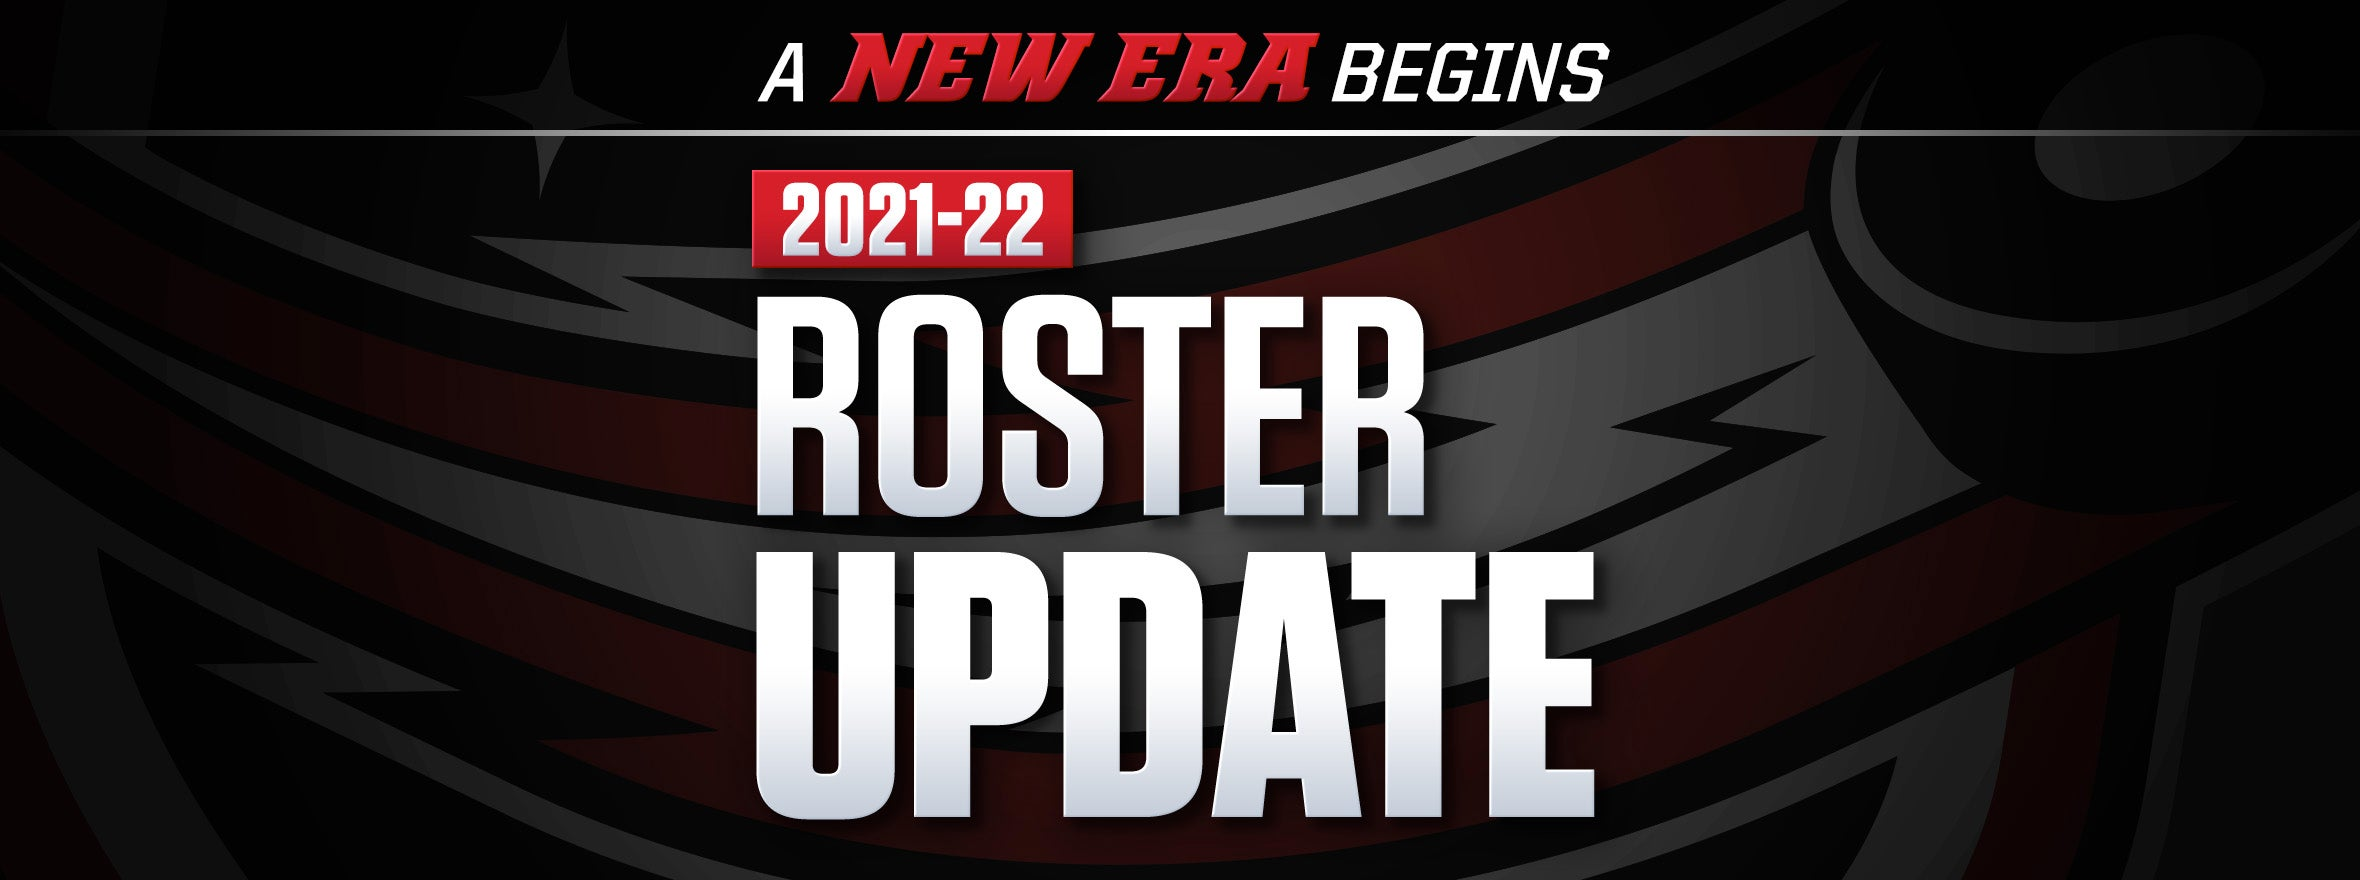 COMETS ROSTER UPDATE